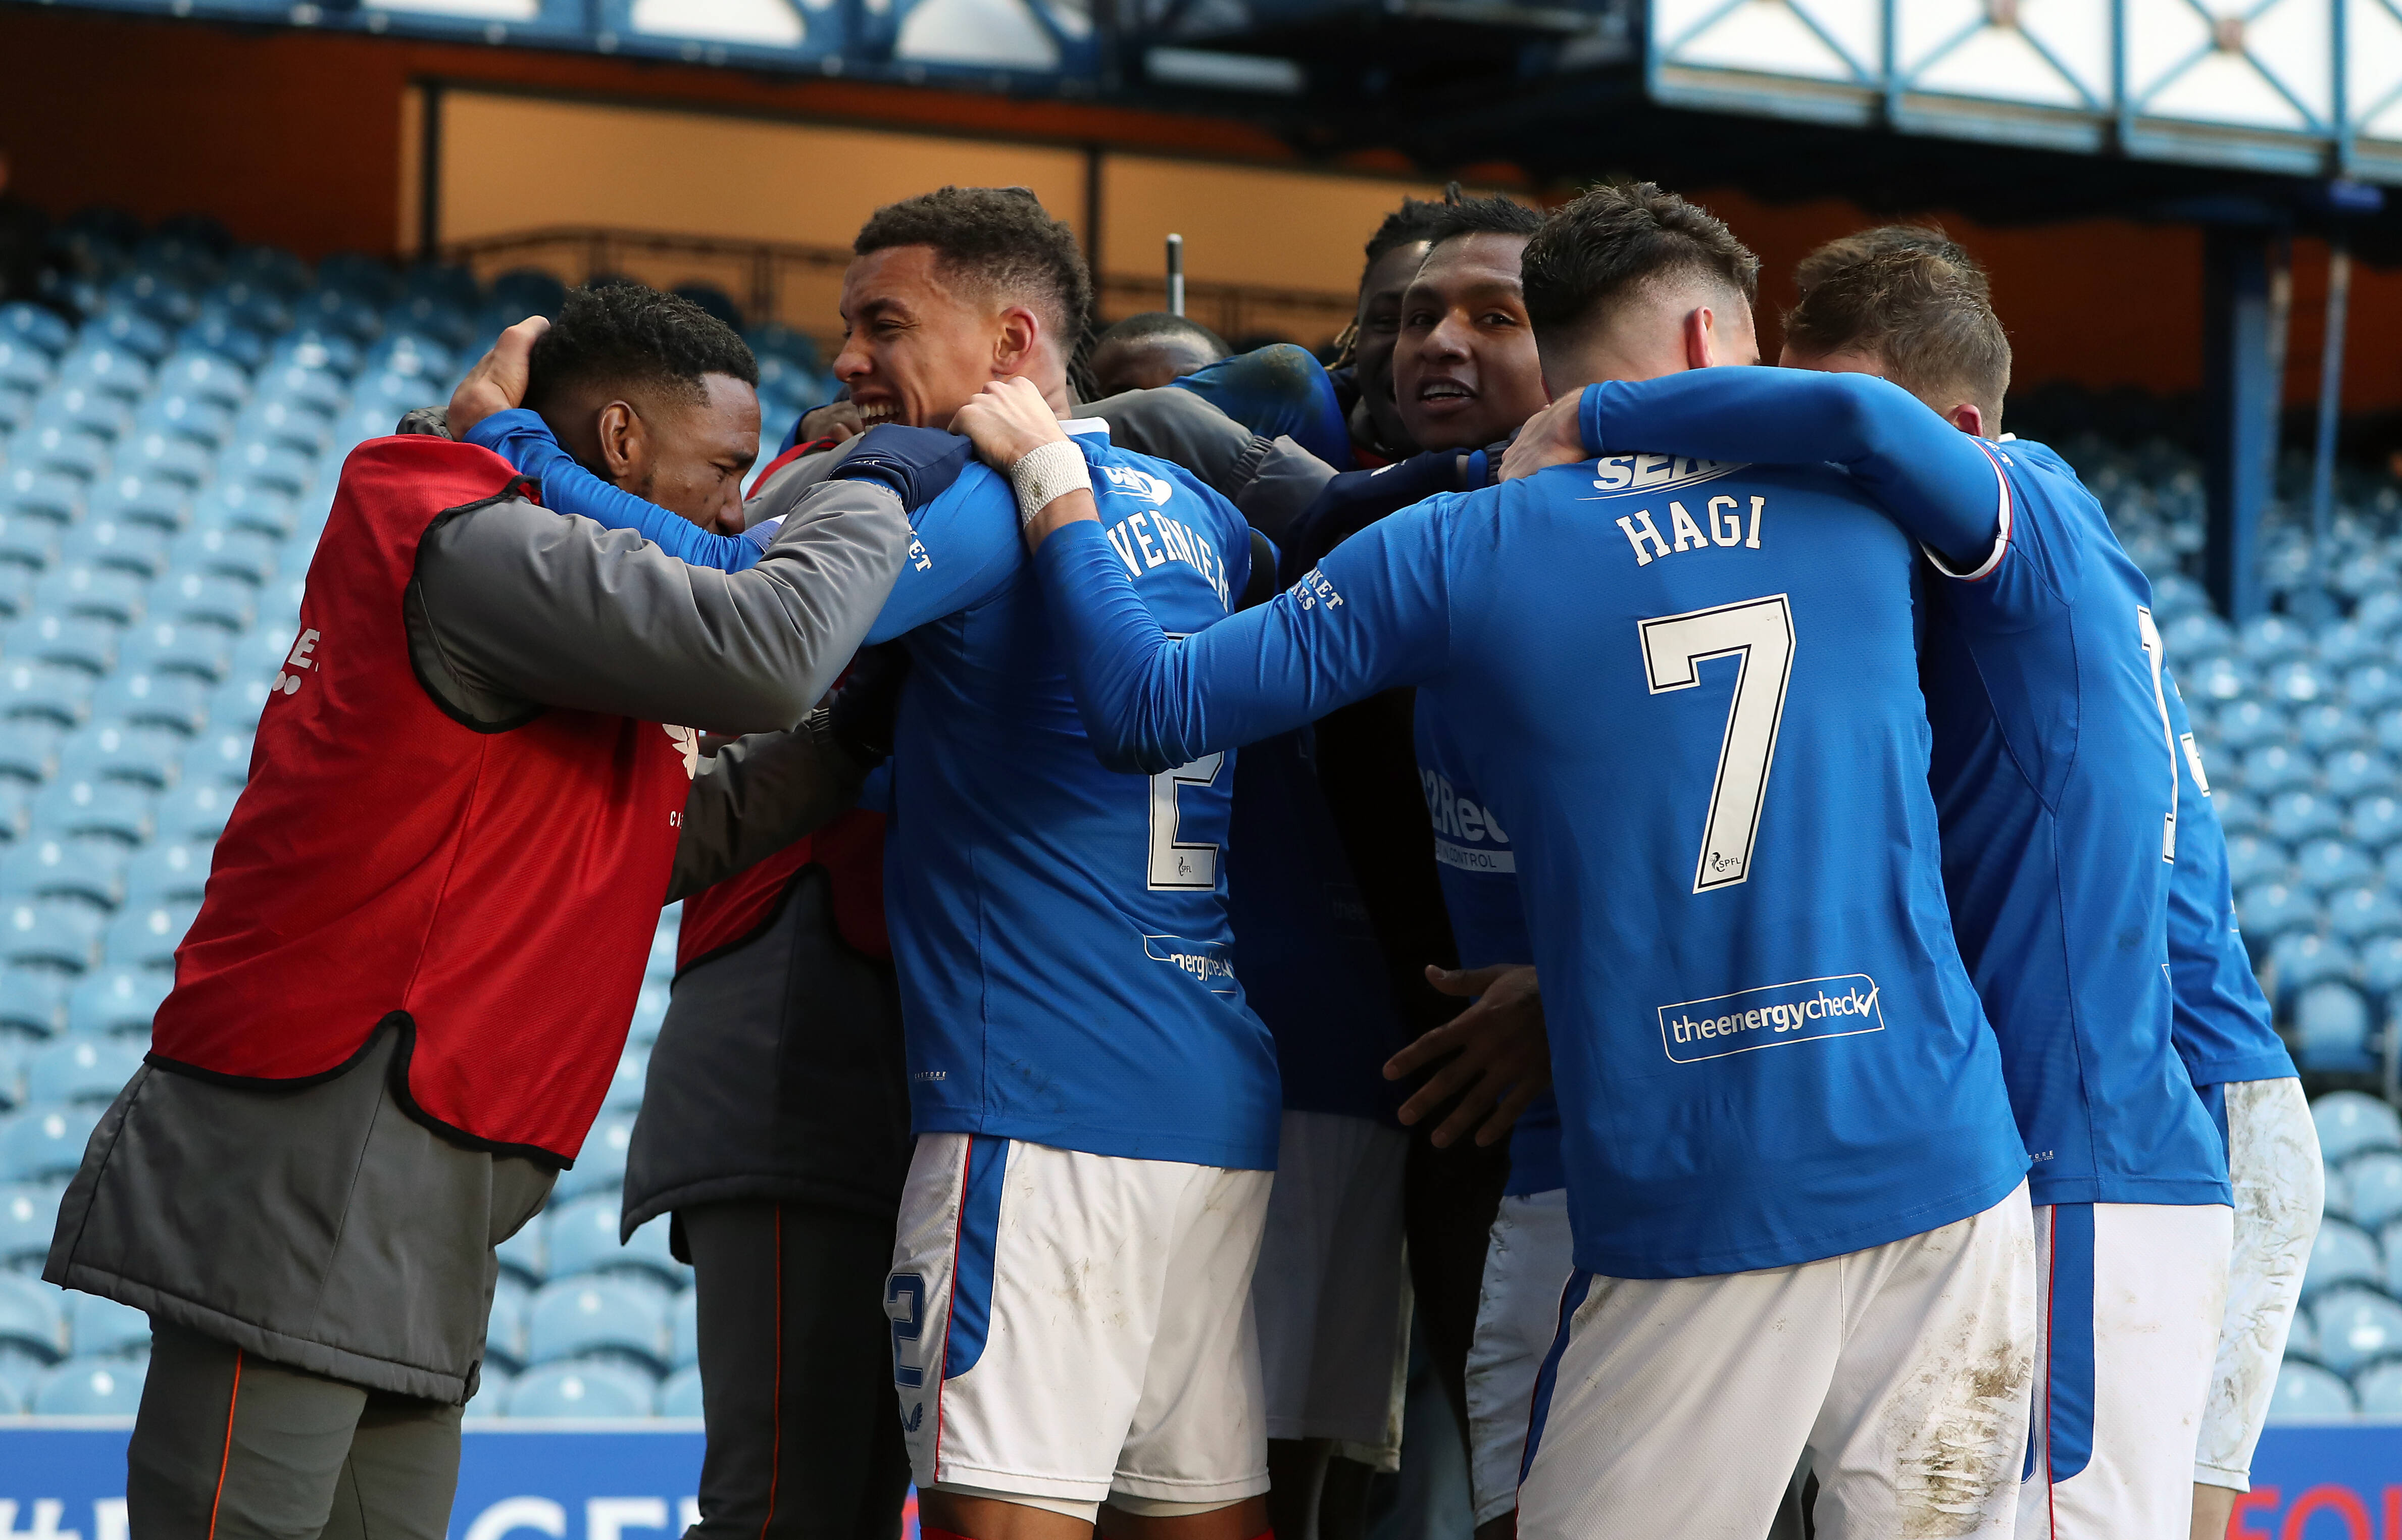 How Did The Fixture Between Celtic And Rangers Play Out - Rangers celebrate